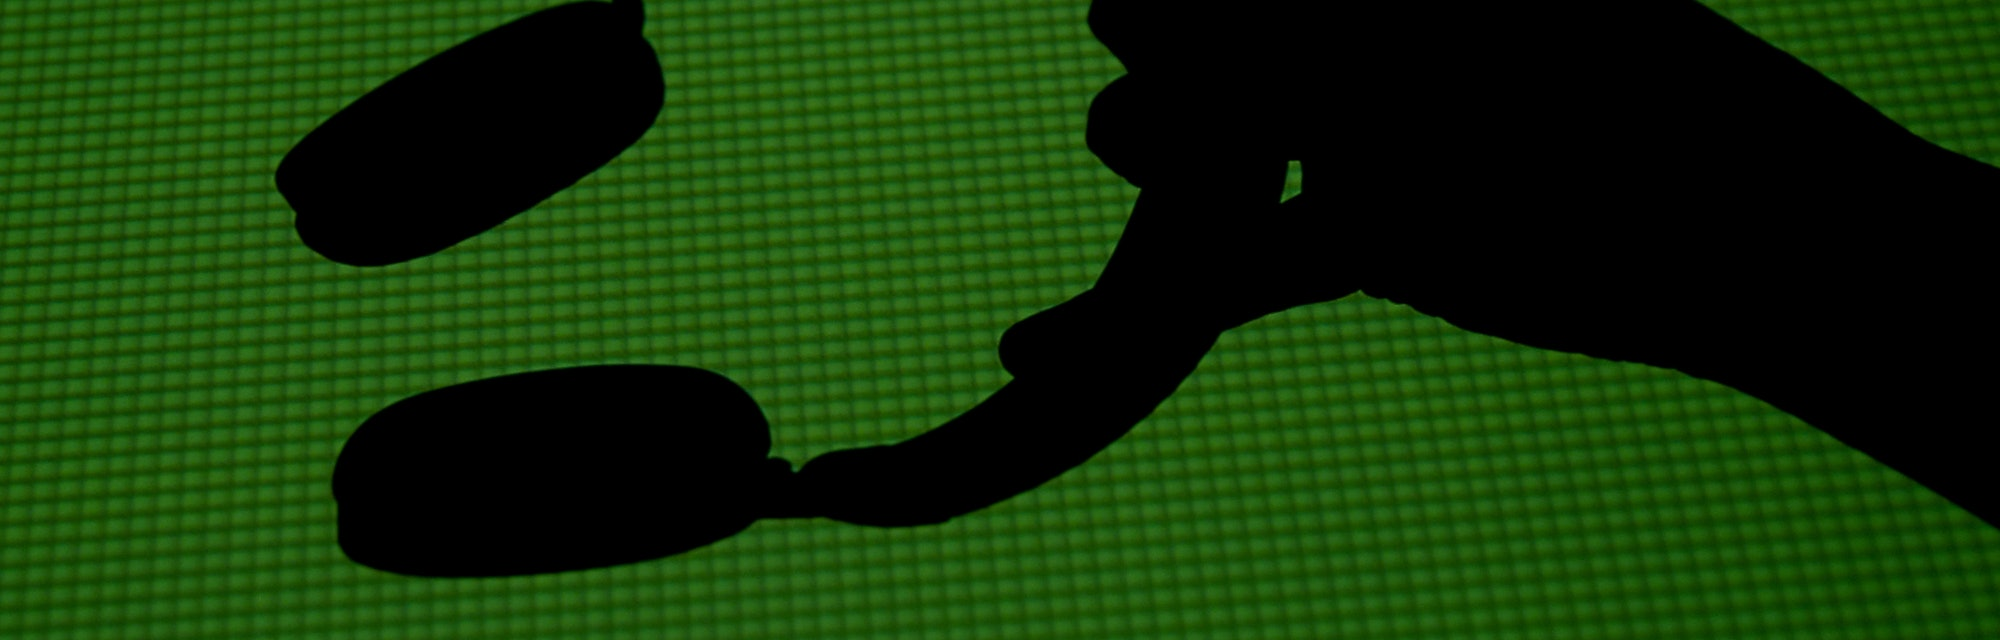 Silhouette of a hand holding a pair of headphones.